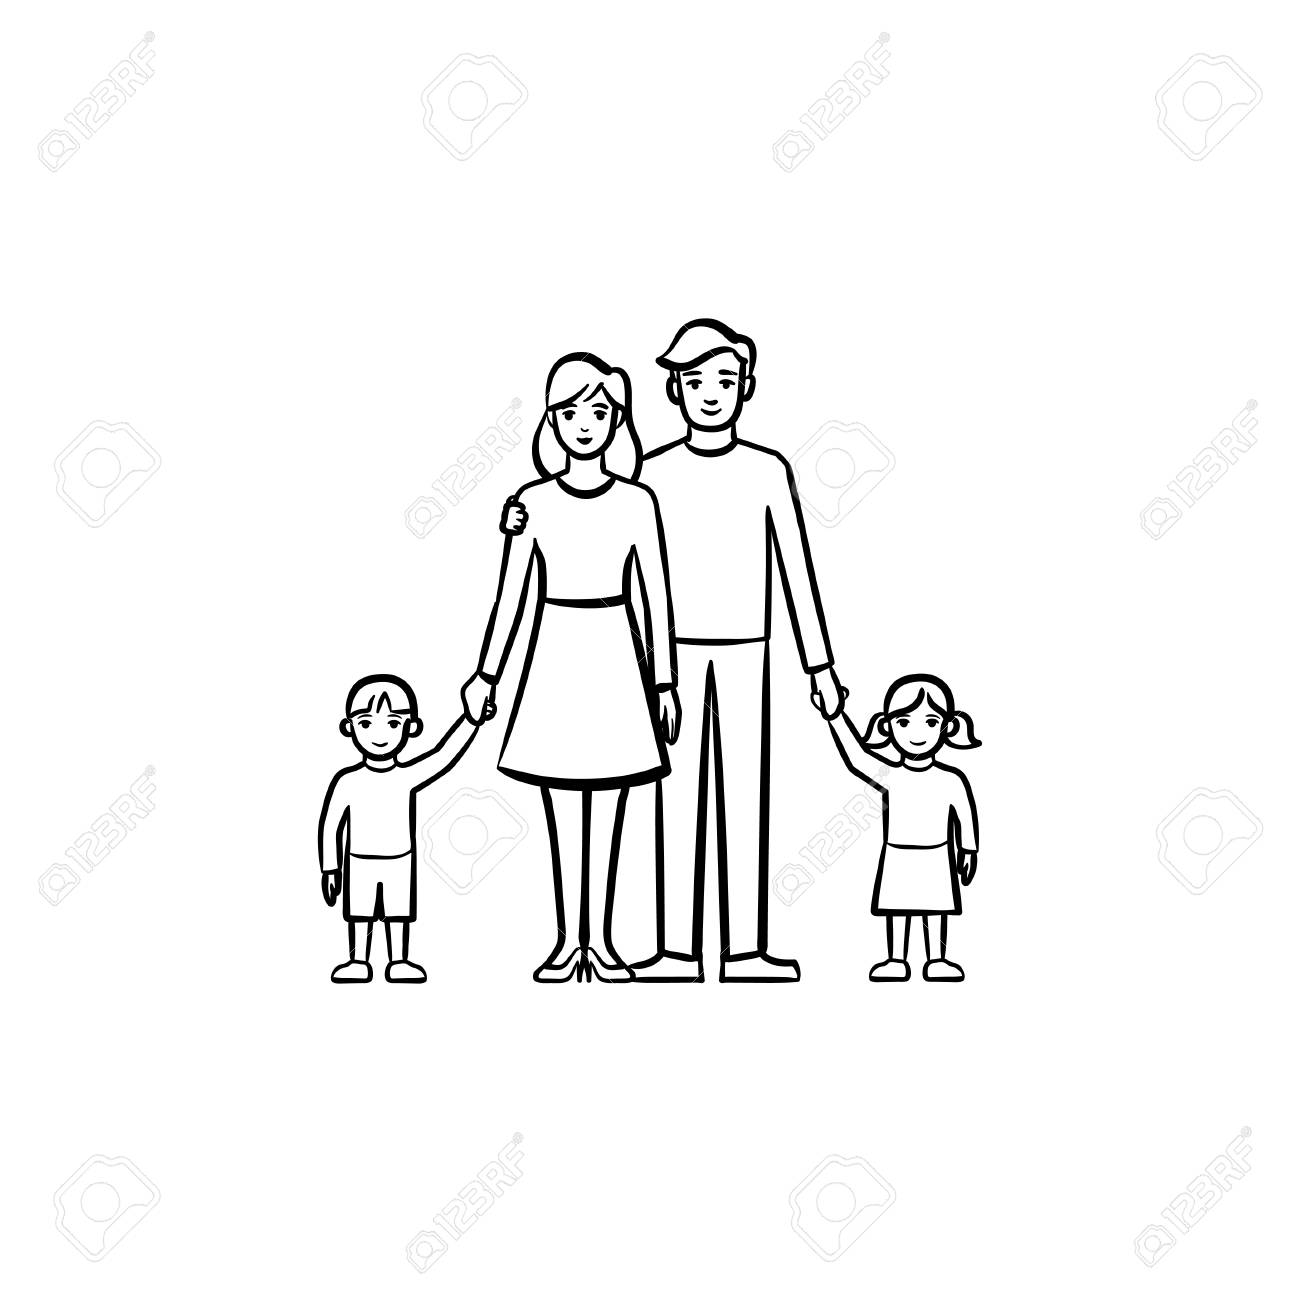 Family Relationship Hand Drawn Outline Doodle Icon Vector Sketch Stock Photo Picture And Royalty Free Image Image 100021563